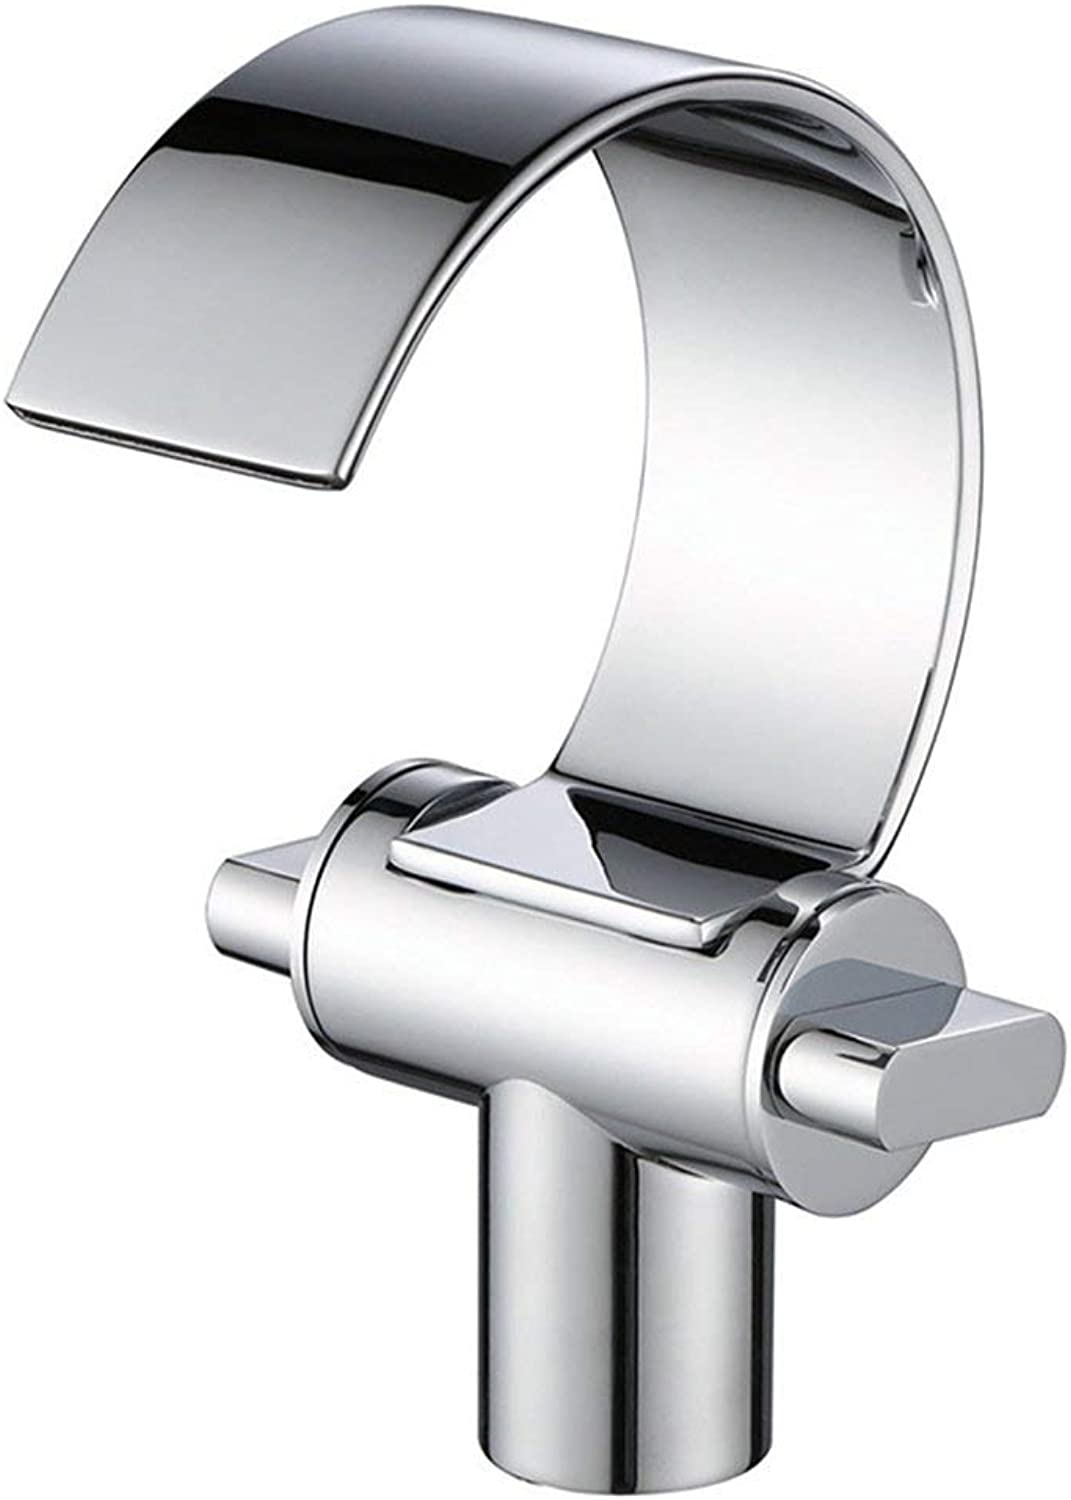 GJR-W Fashion Modern Chrome Finish Bathroom High Basin Faucet Waterfall Sink Faucet Single Handle Single Hole Wide Counter Basin Faucet Hot And Cold